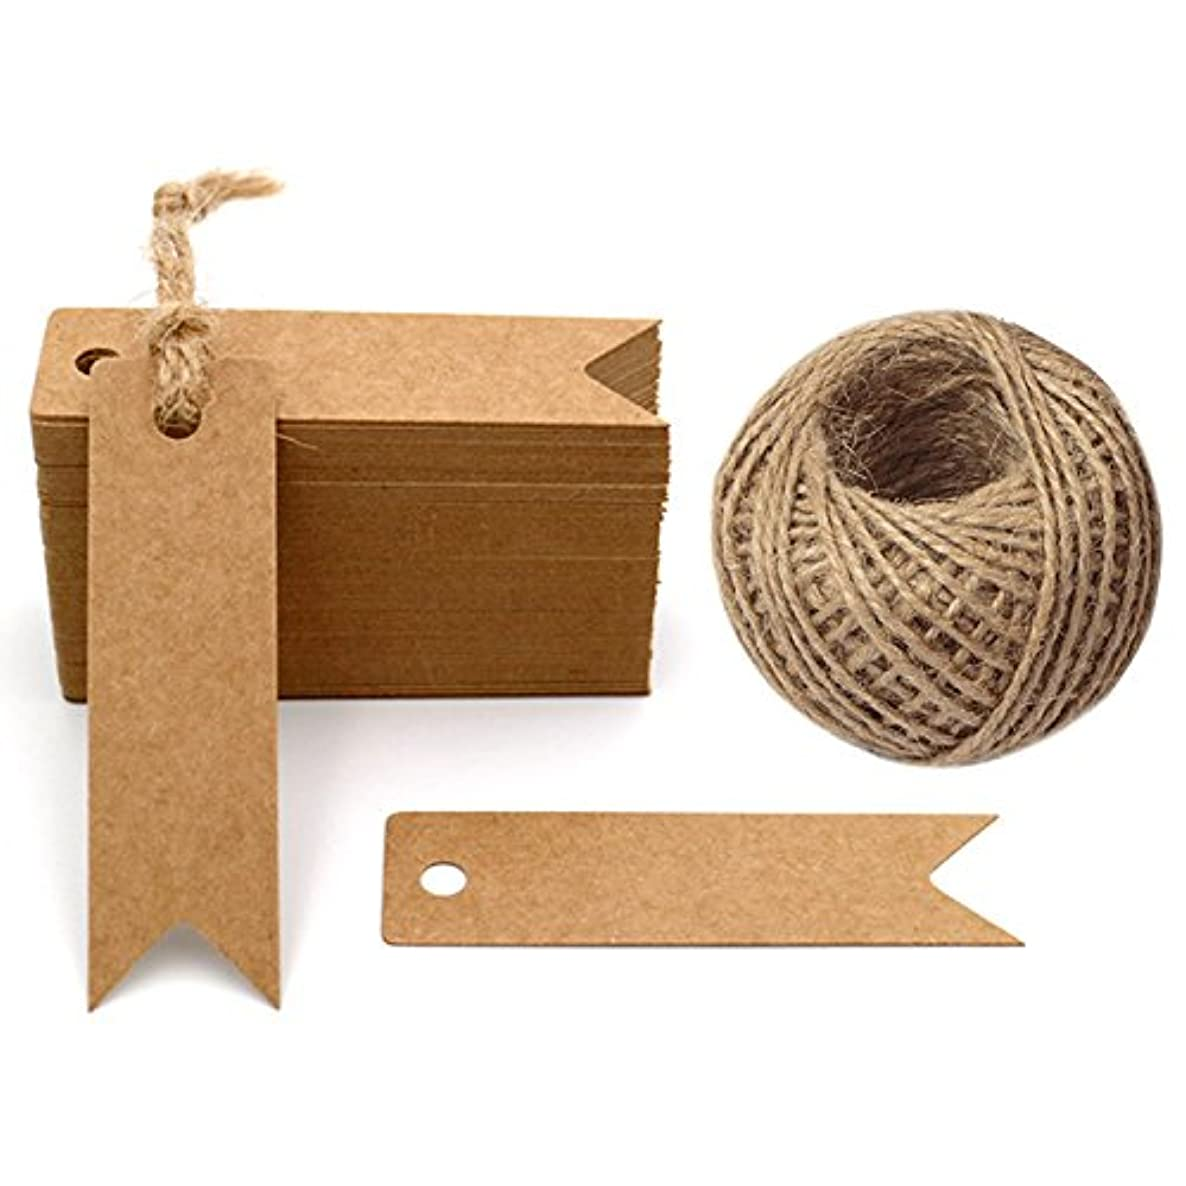 G2PLUS 100 PCS Kraft Paper Tags with String Craft Gift Tags Mini Size 7 cm x 2 cm Wedding Brown Hang Tags with 30 Meters Jute Twine (Brown)